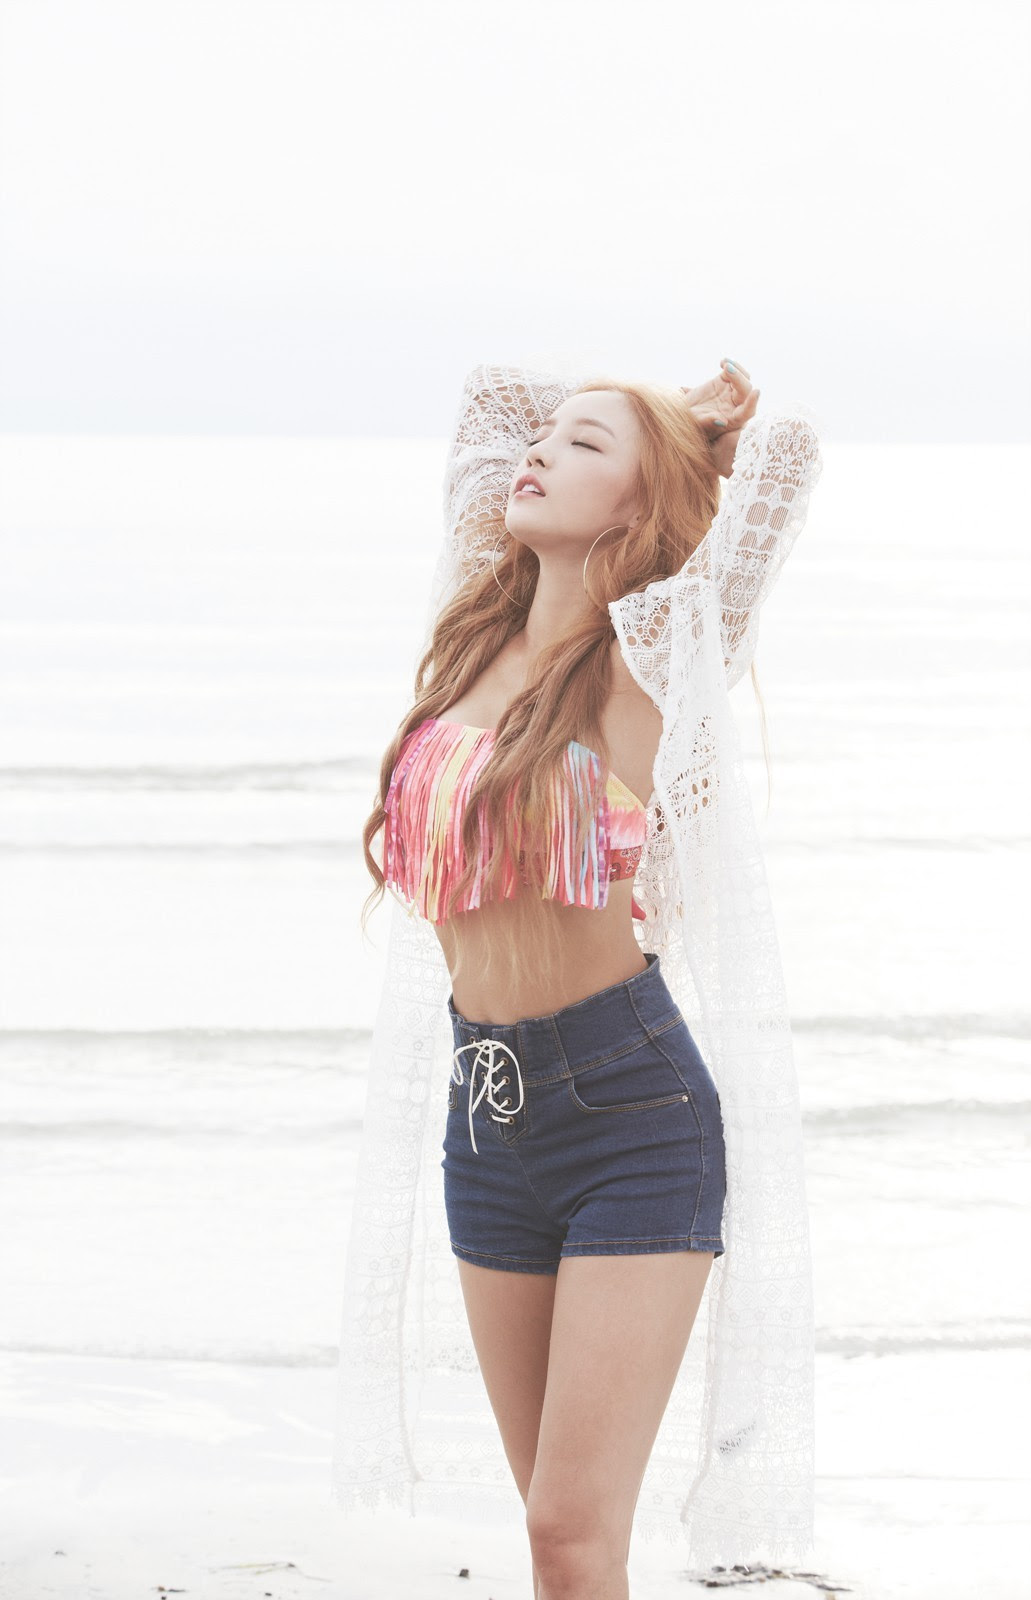 Goo Hara - Alohara (Can You Feel It)